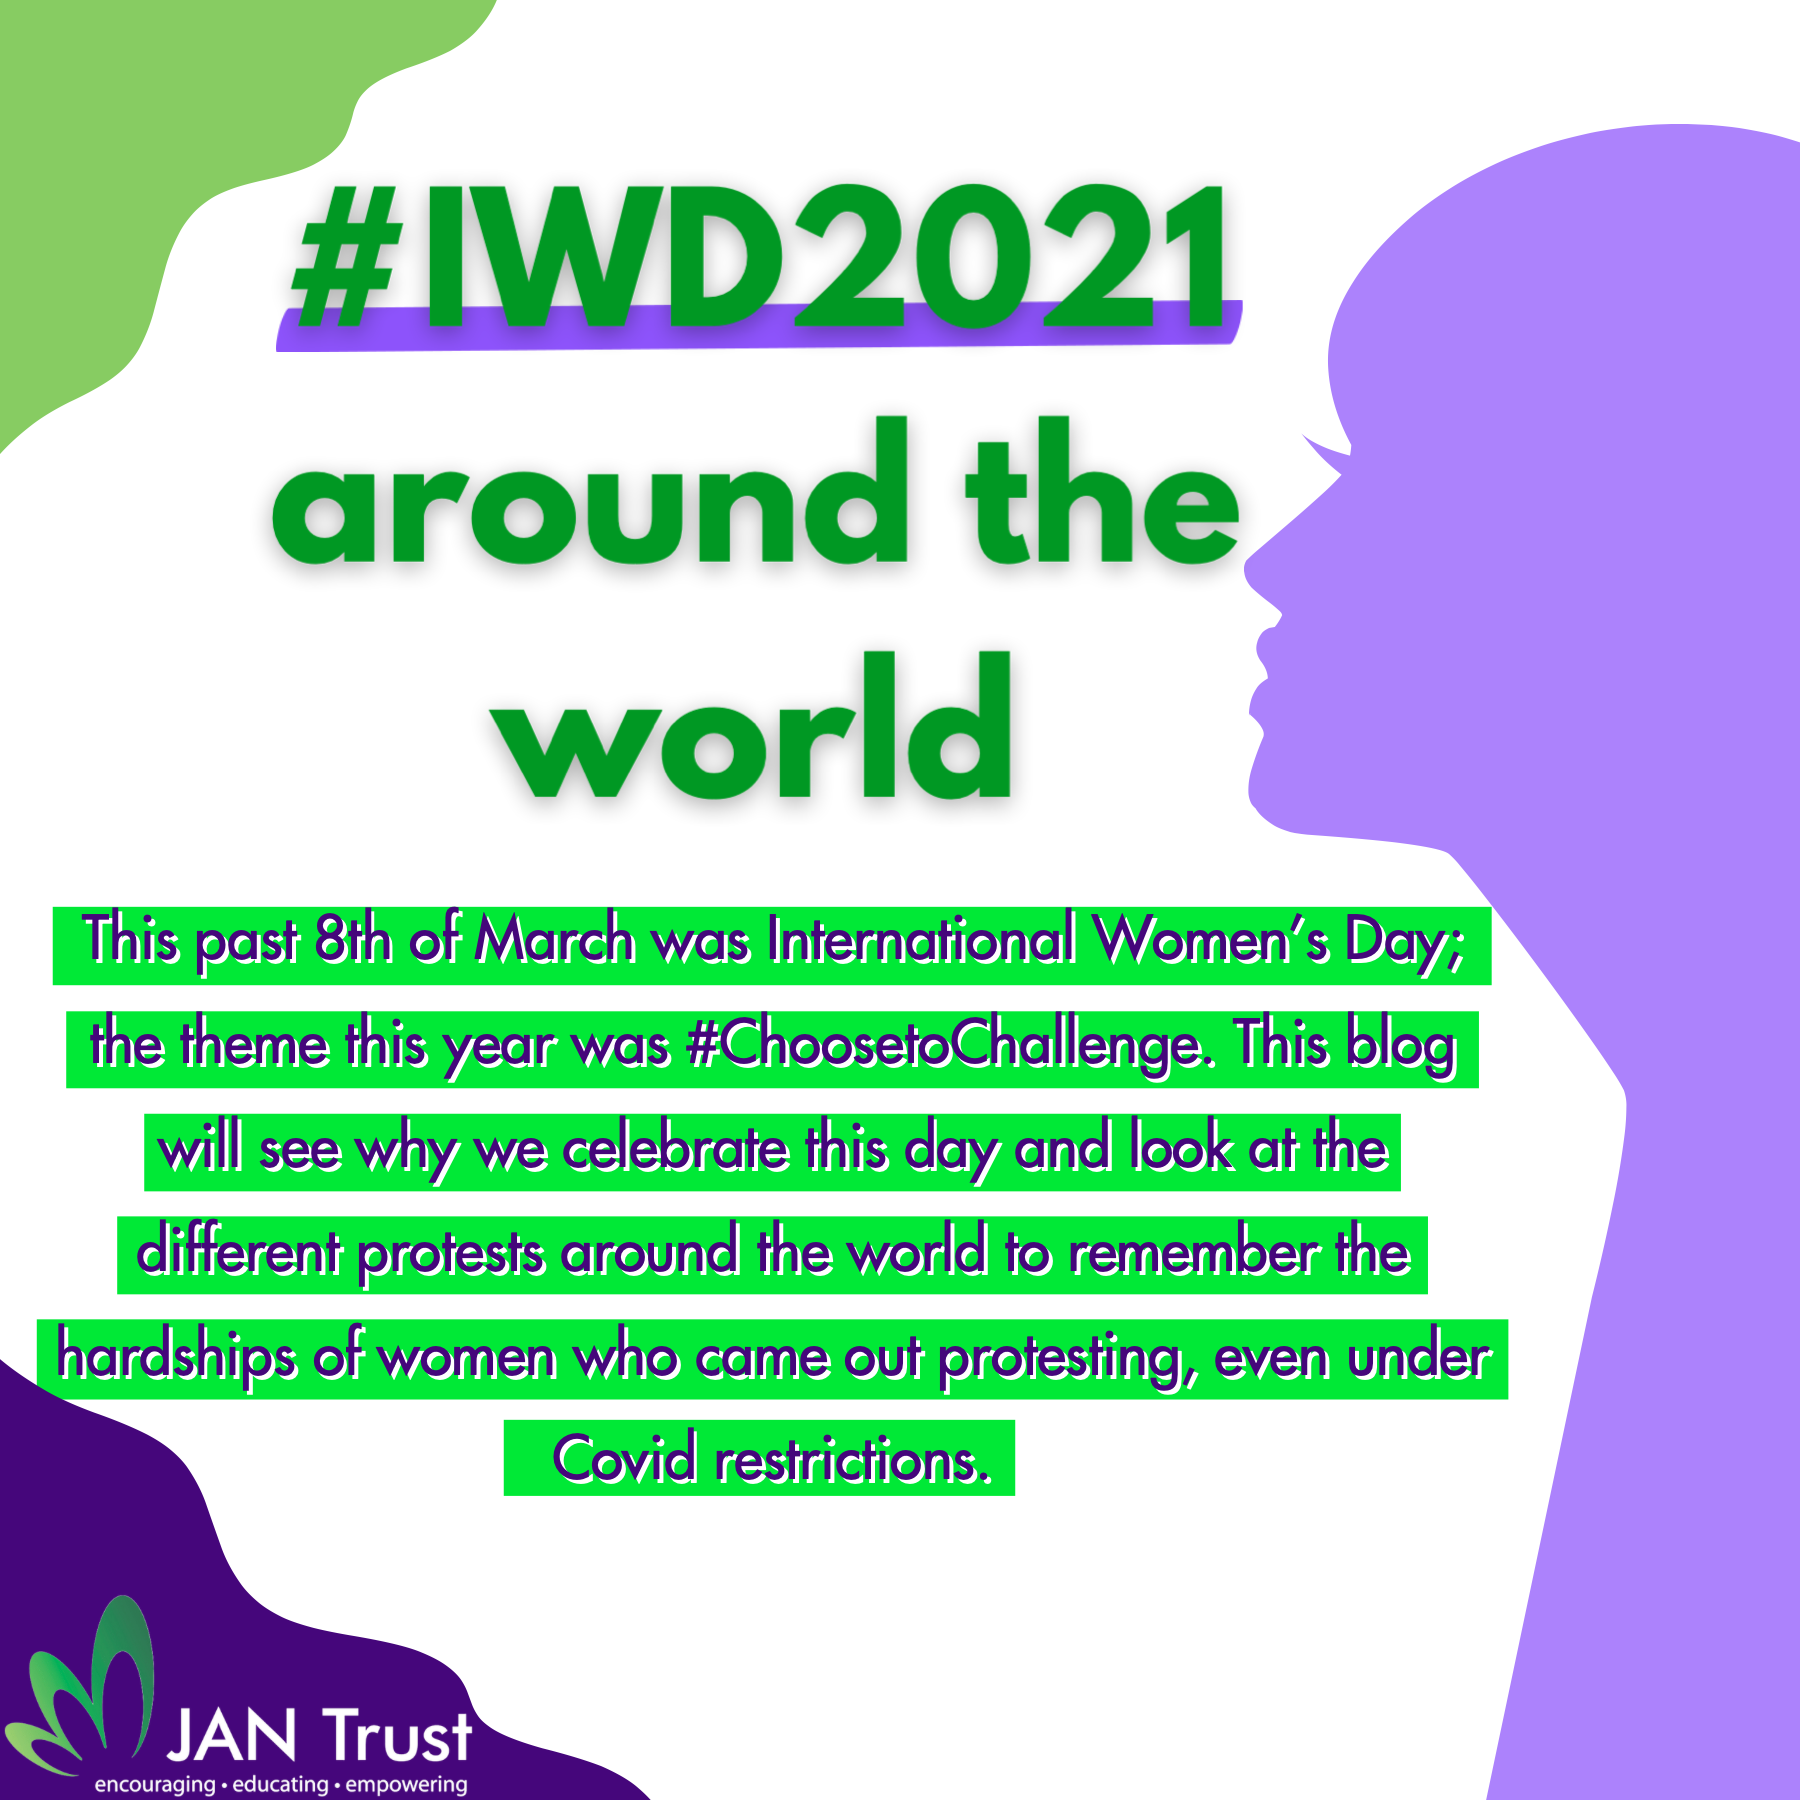 #IWD2021 around the world